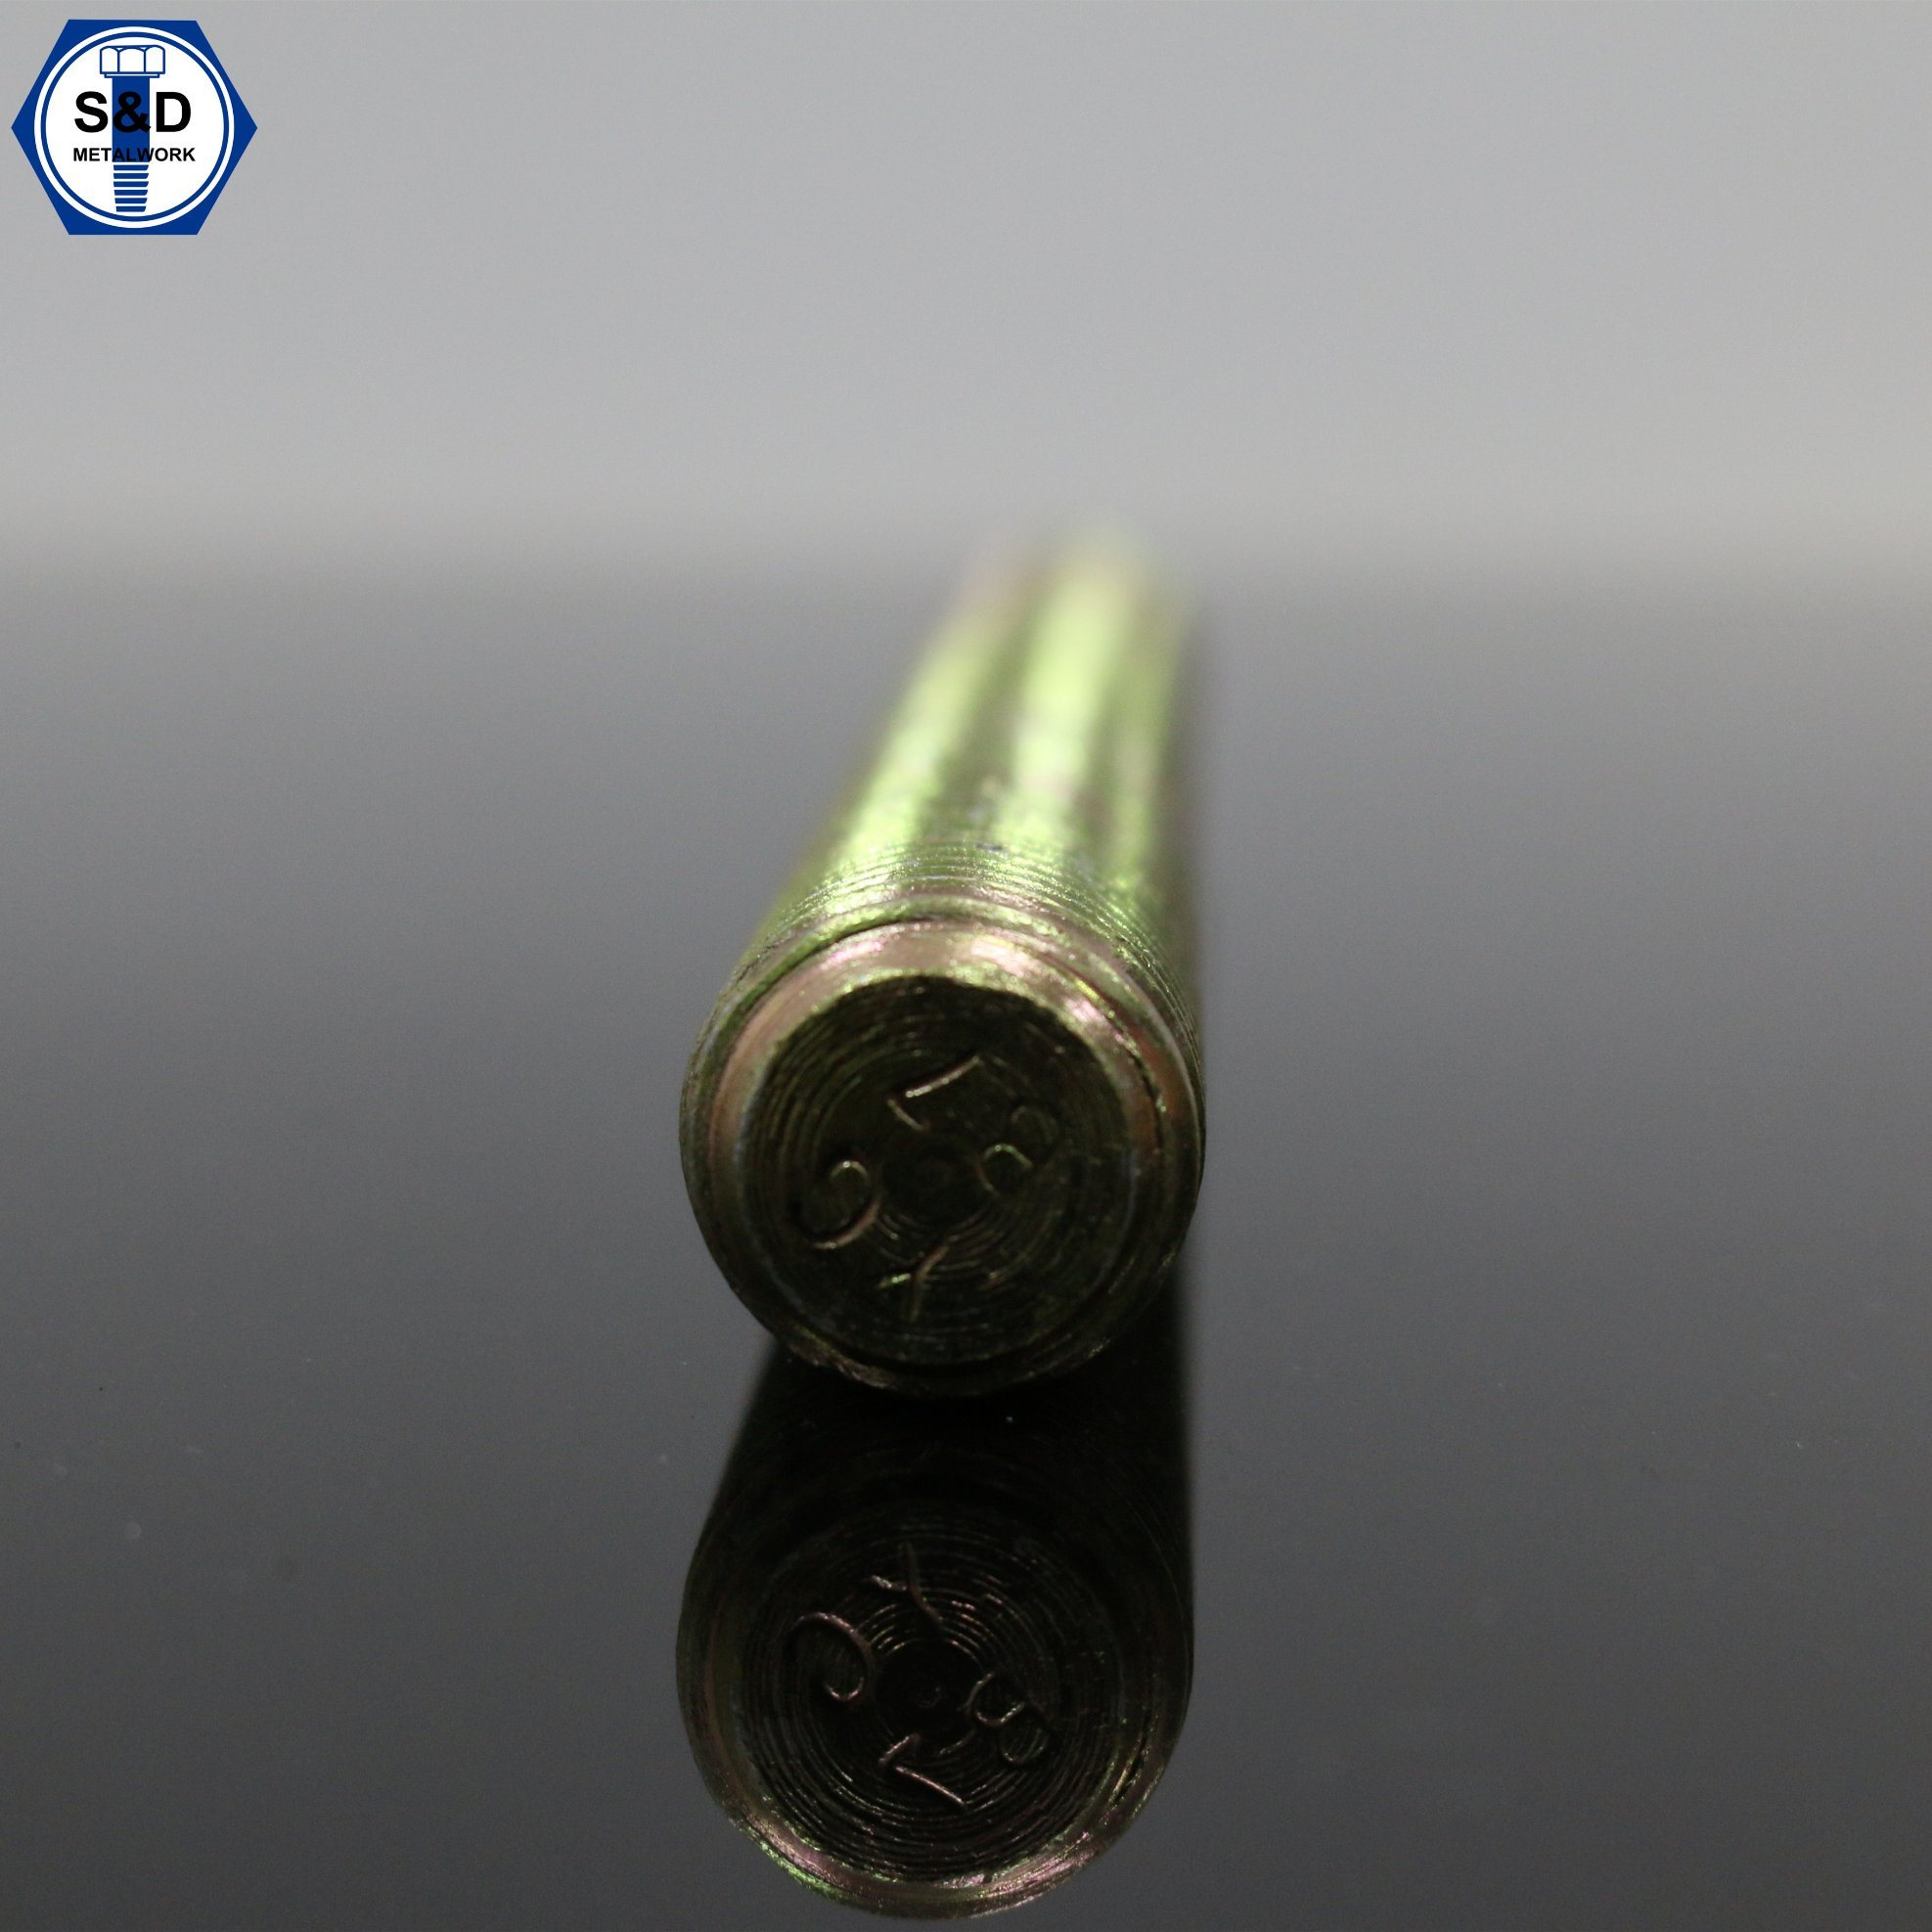 Stud Bolts/ Threaded Rods ASTM A193-B7 Yellow-Zinc Plated